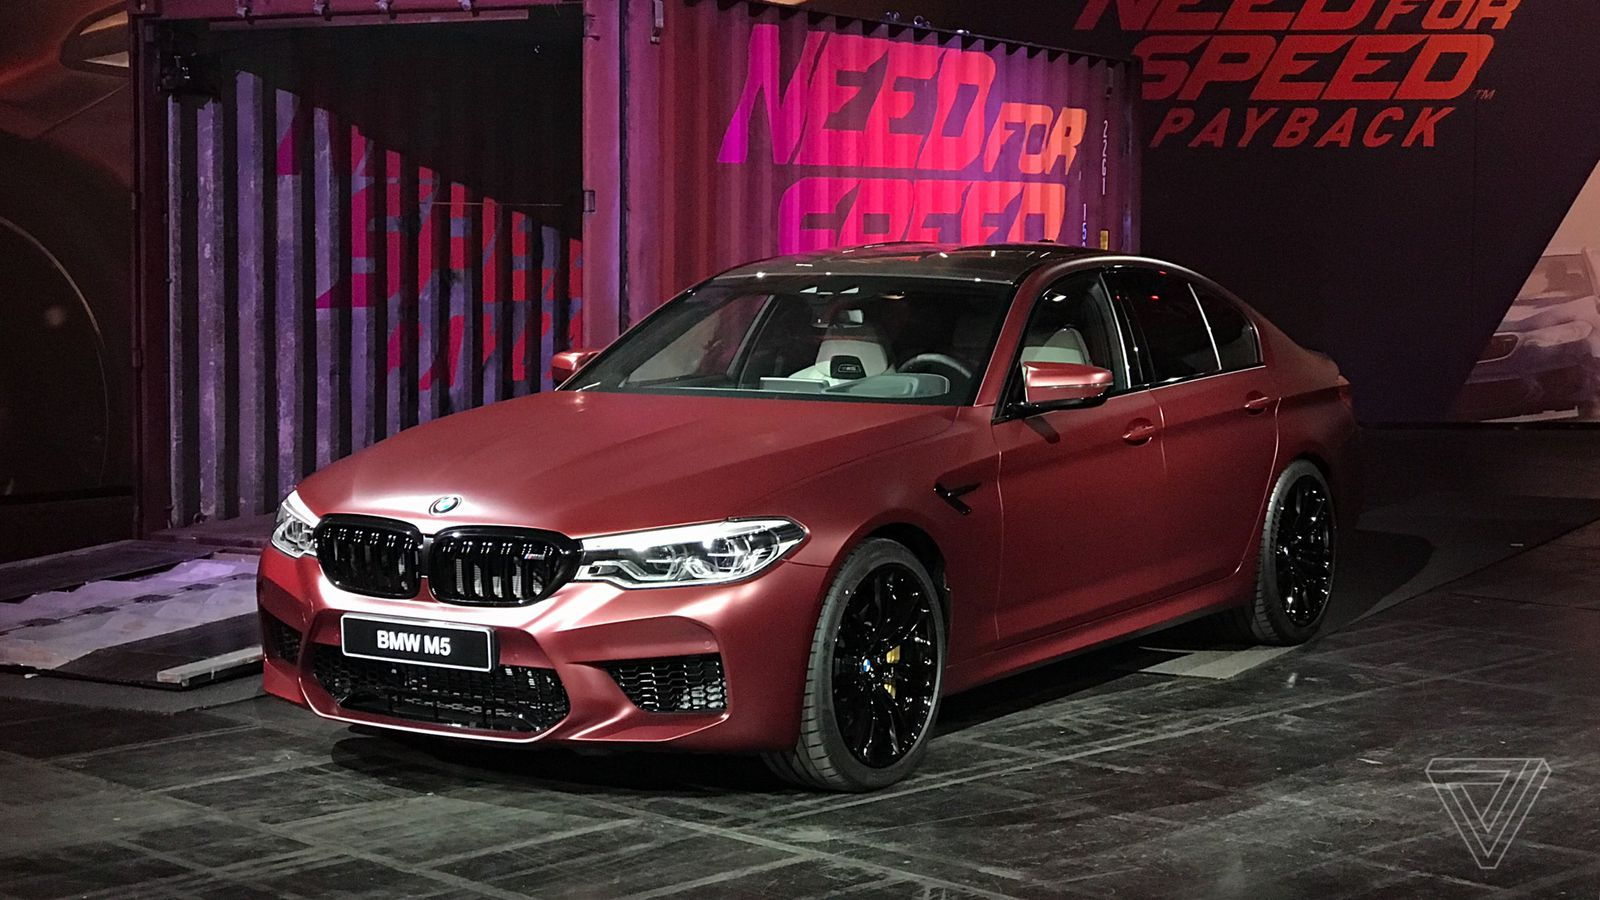 BMW Shows Off The New M5 In Need For Speed Payback The Verge